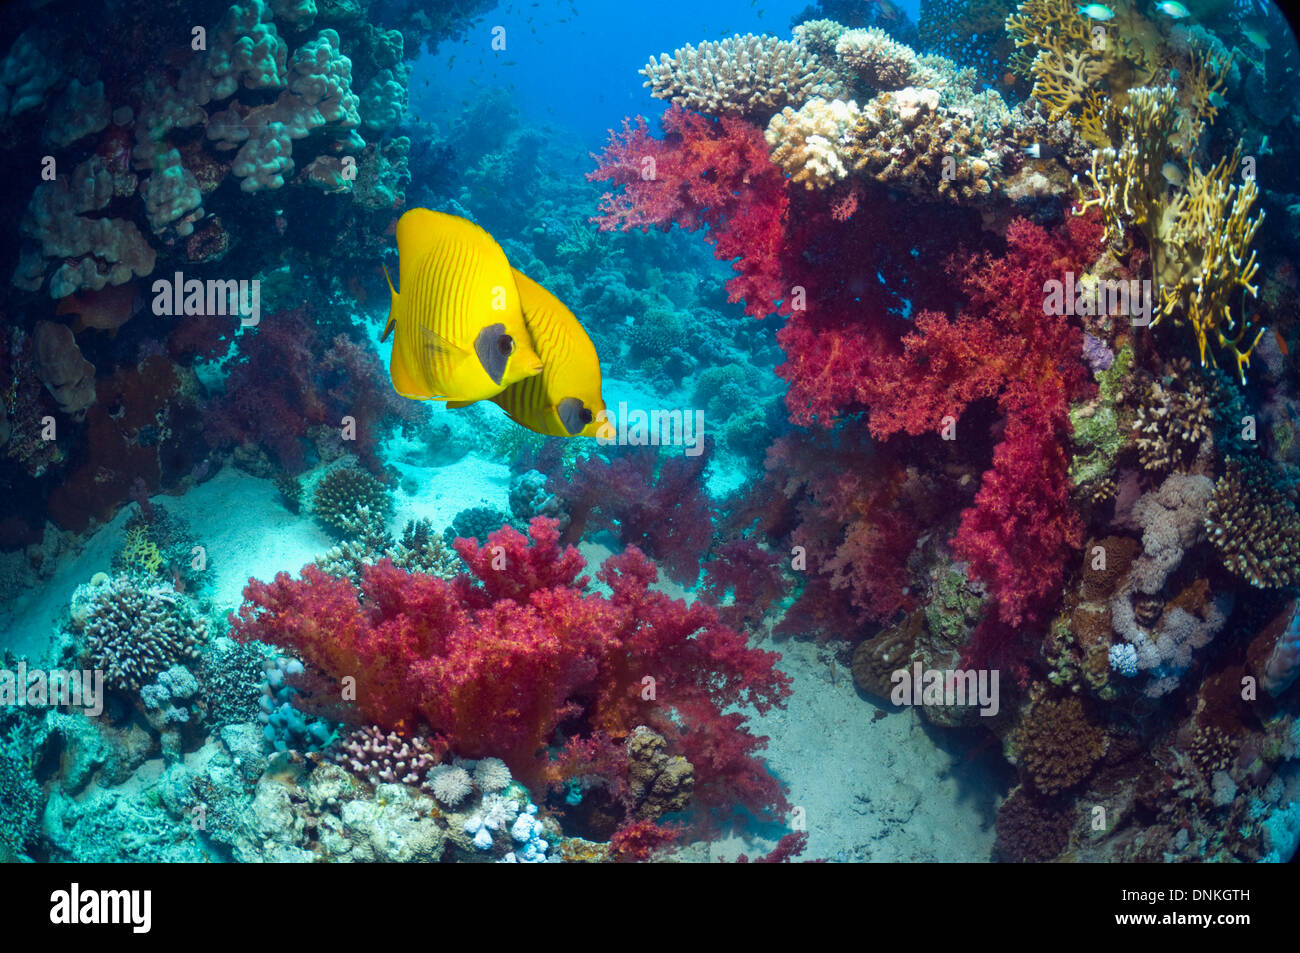 Golden butterflyfish (Chaetodon semilarvatus) with soft corals (Dendronephthya sp) on coral reef. Egypt, Red Sea. - Stock Image